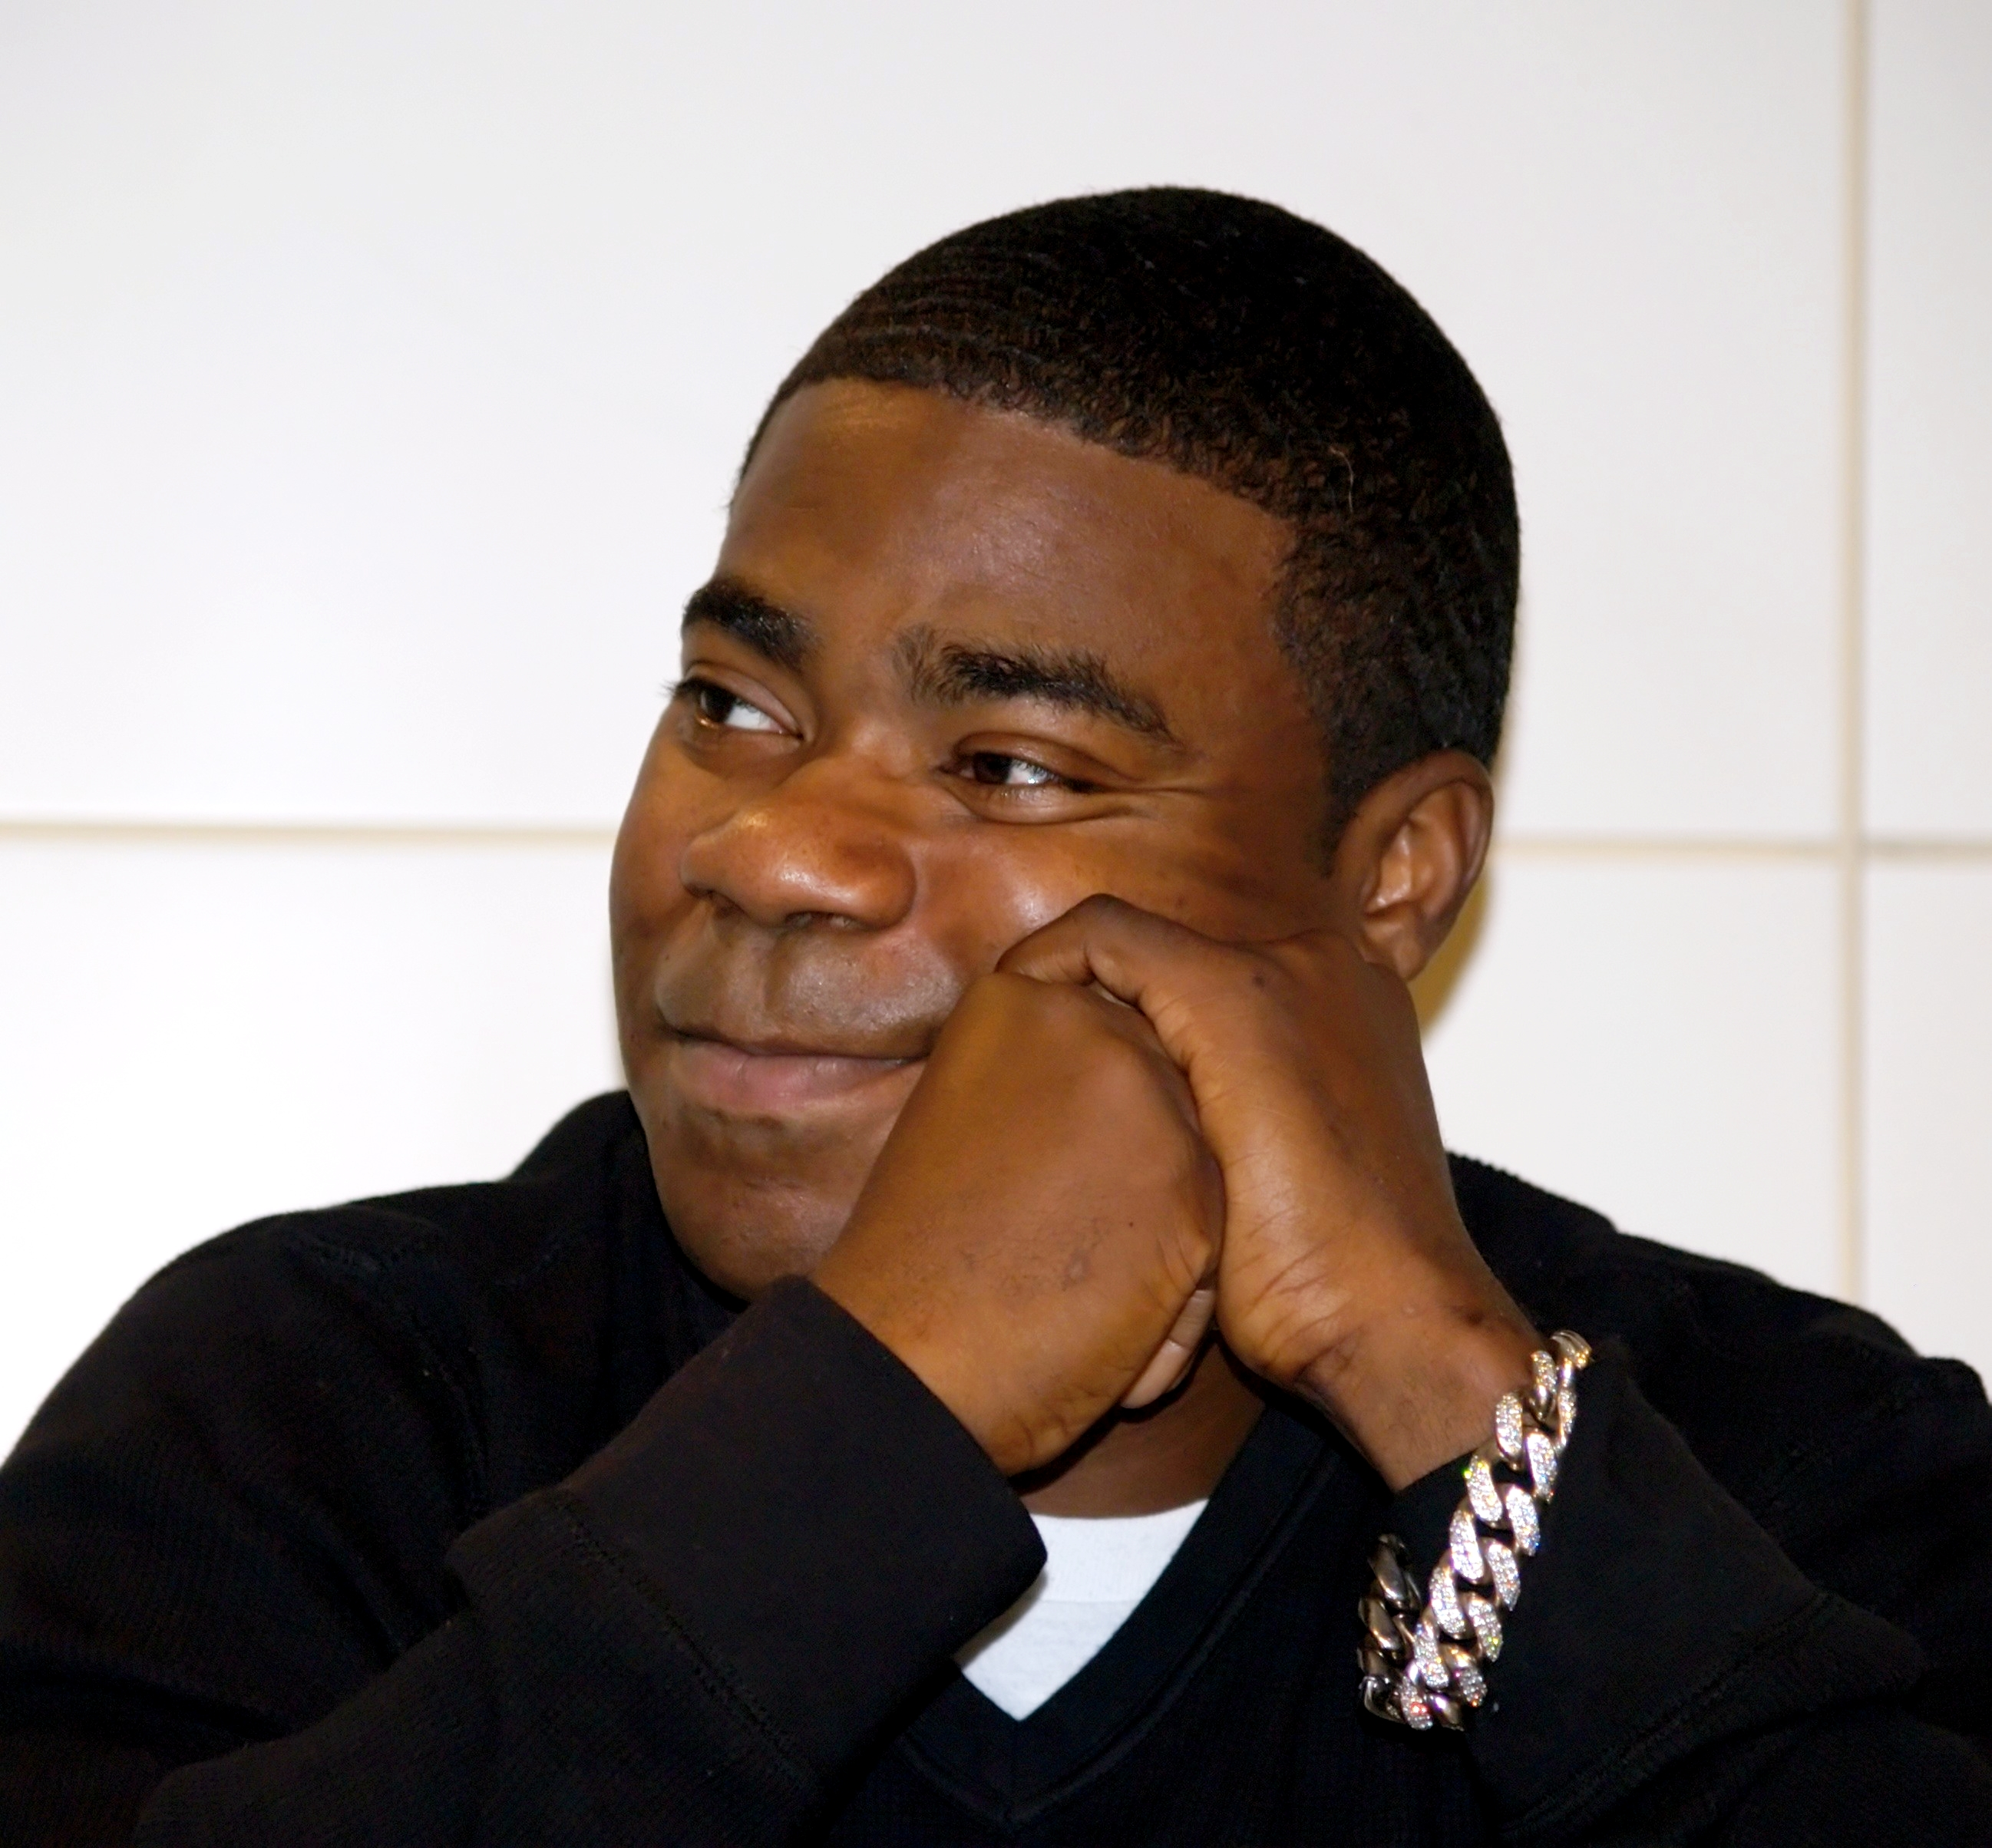 Tracy_Morgan_5_Shankbone_2009_NYC